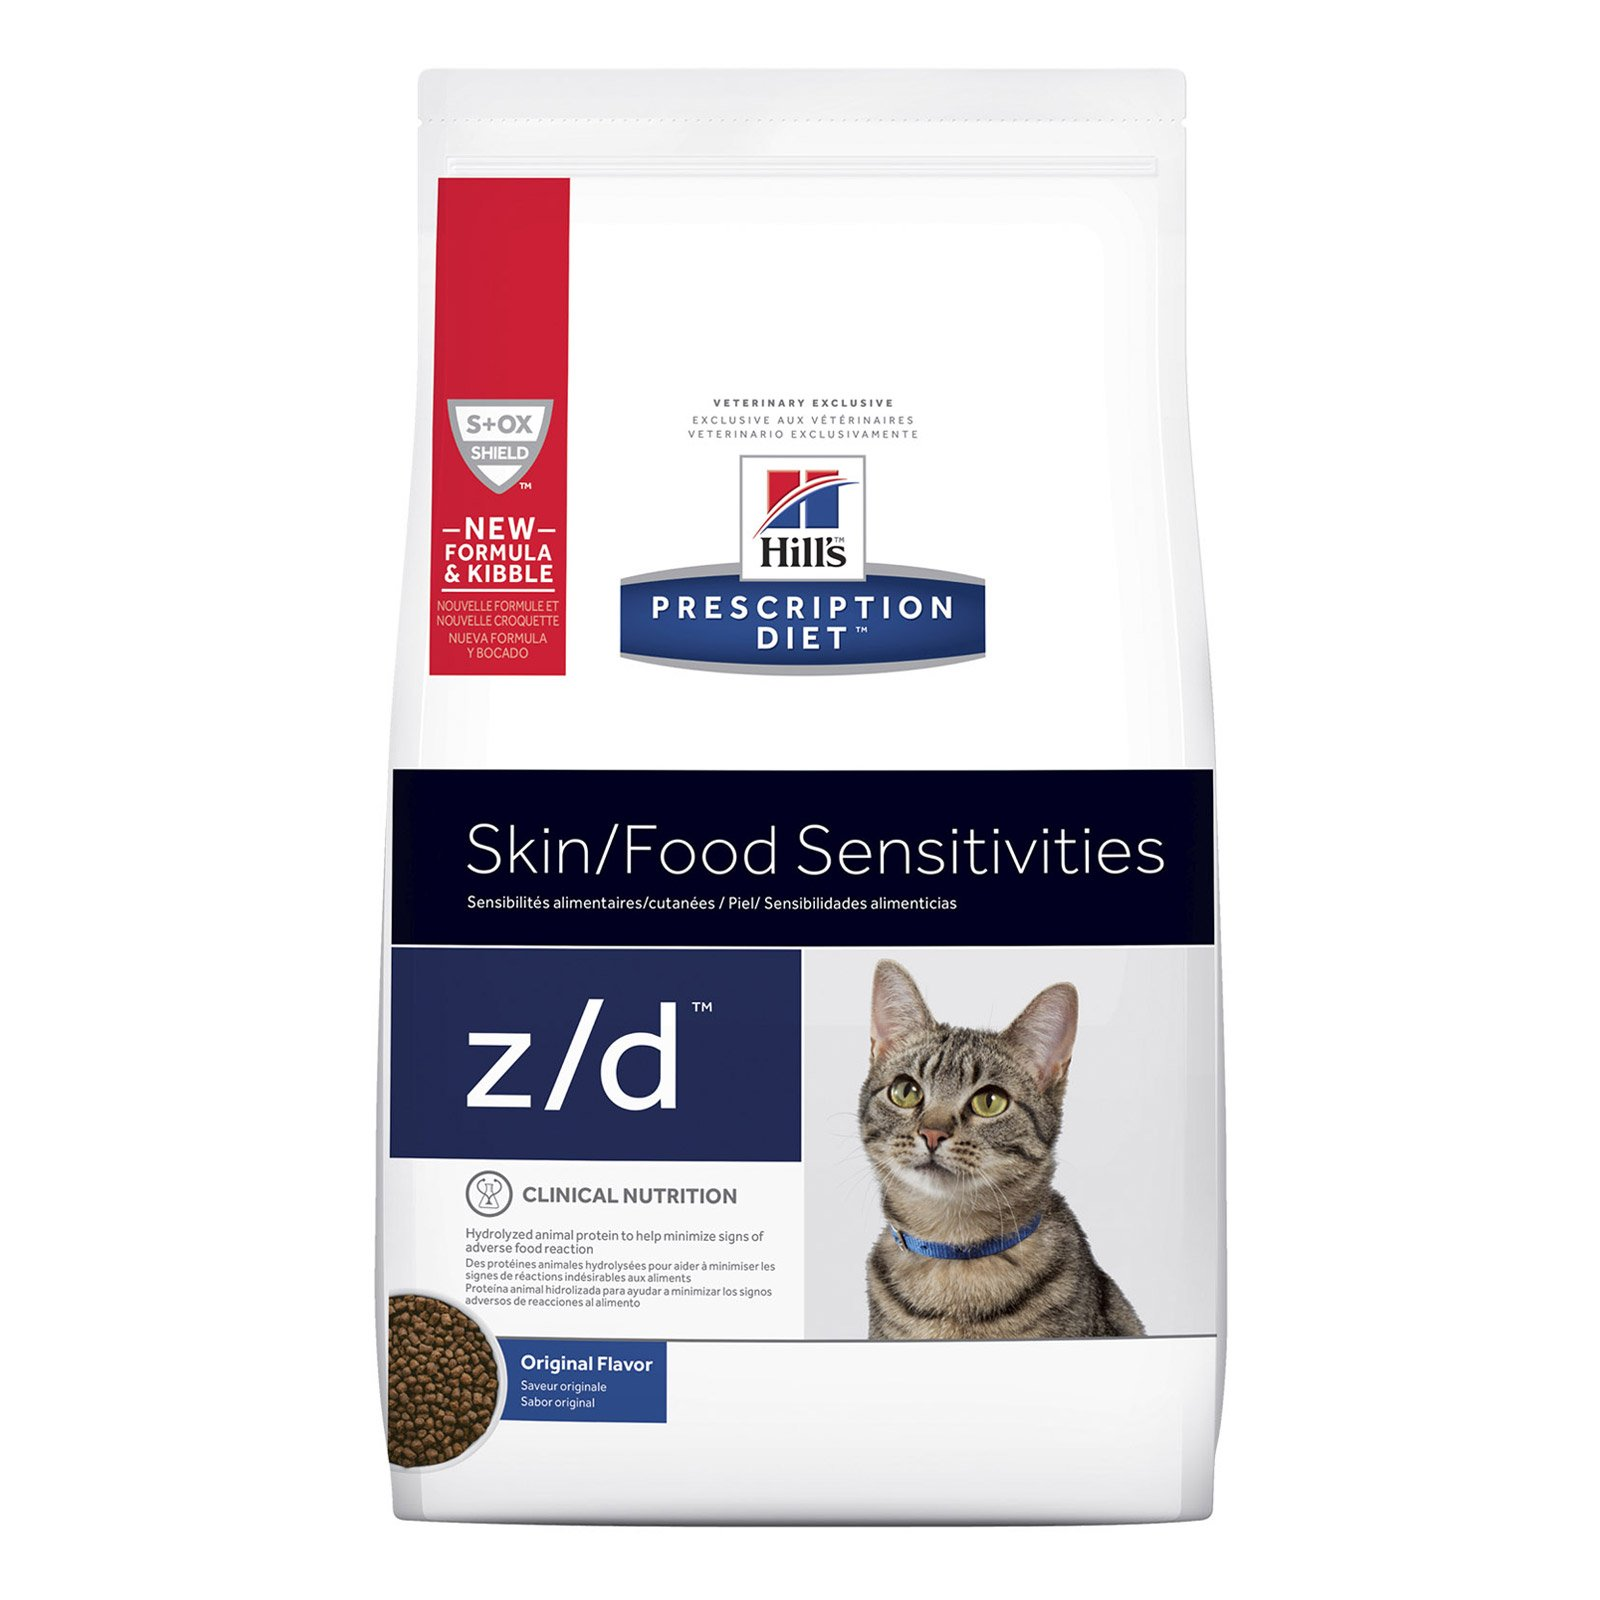 Hill's Prescription Diet z/d Skin/Food Sensitivities Dry Cat Food